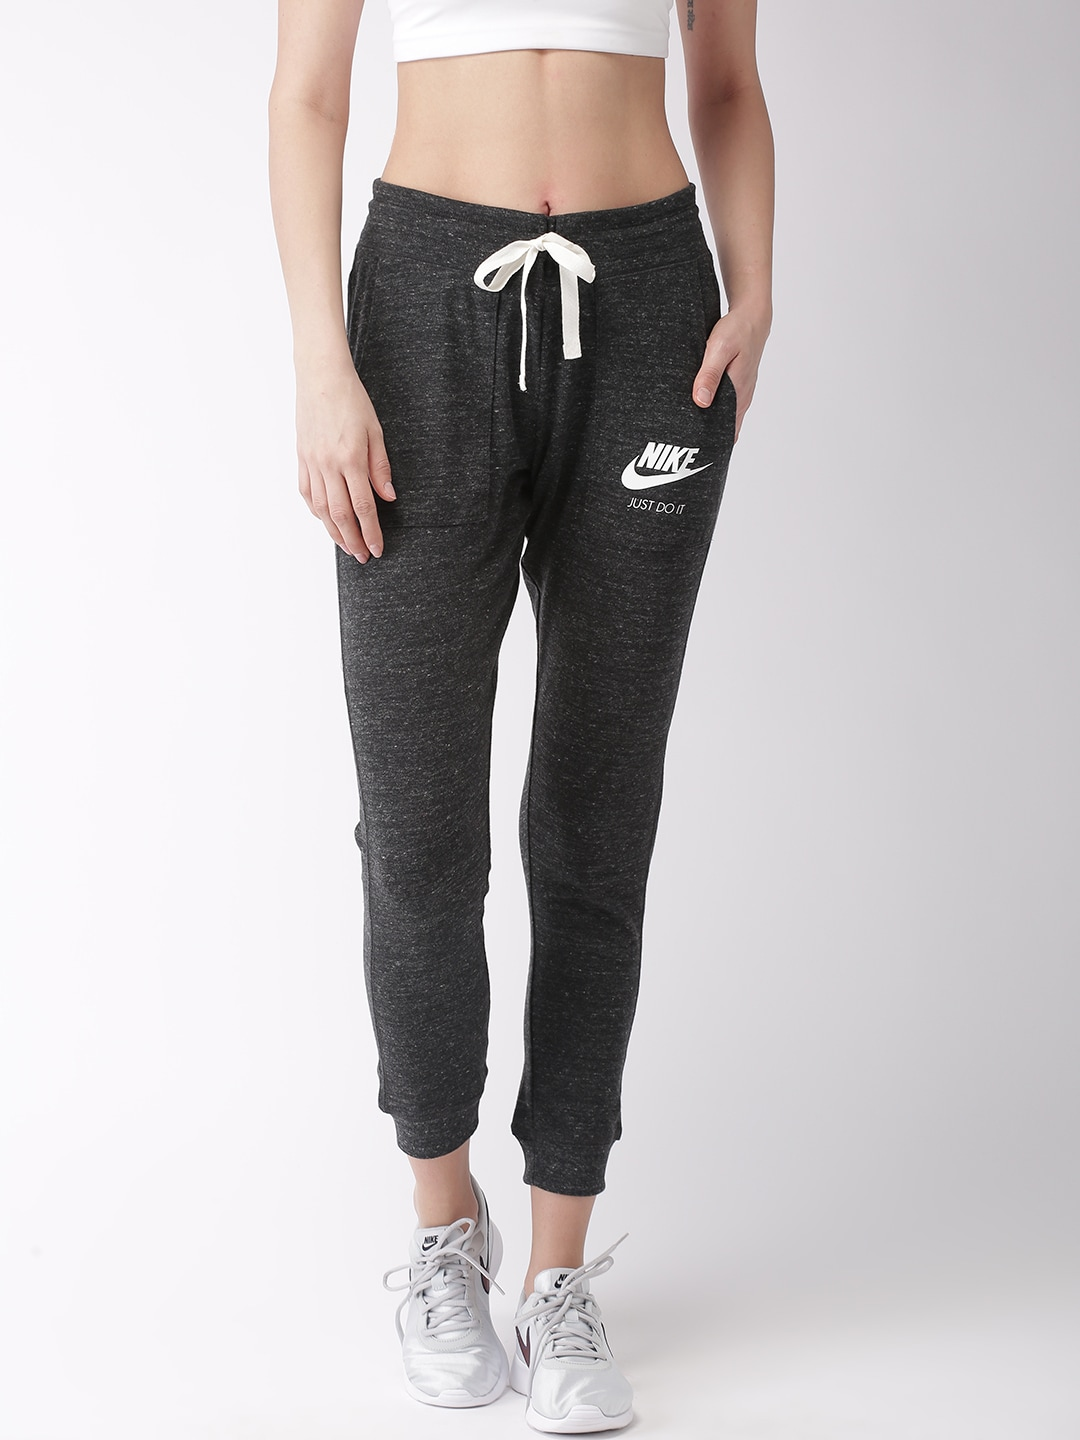 exquisite style authentic new specials Nike Women Black Standard Fit Gym Vntg Joggers